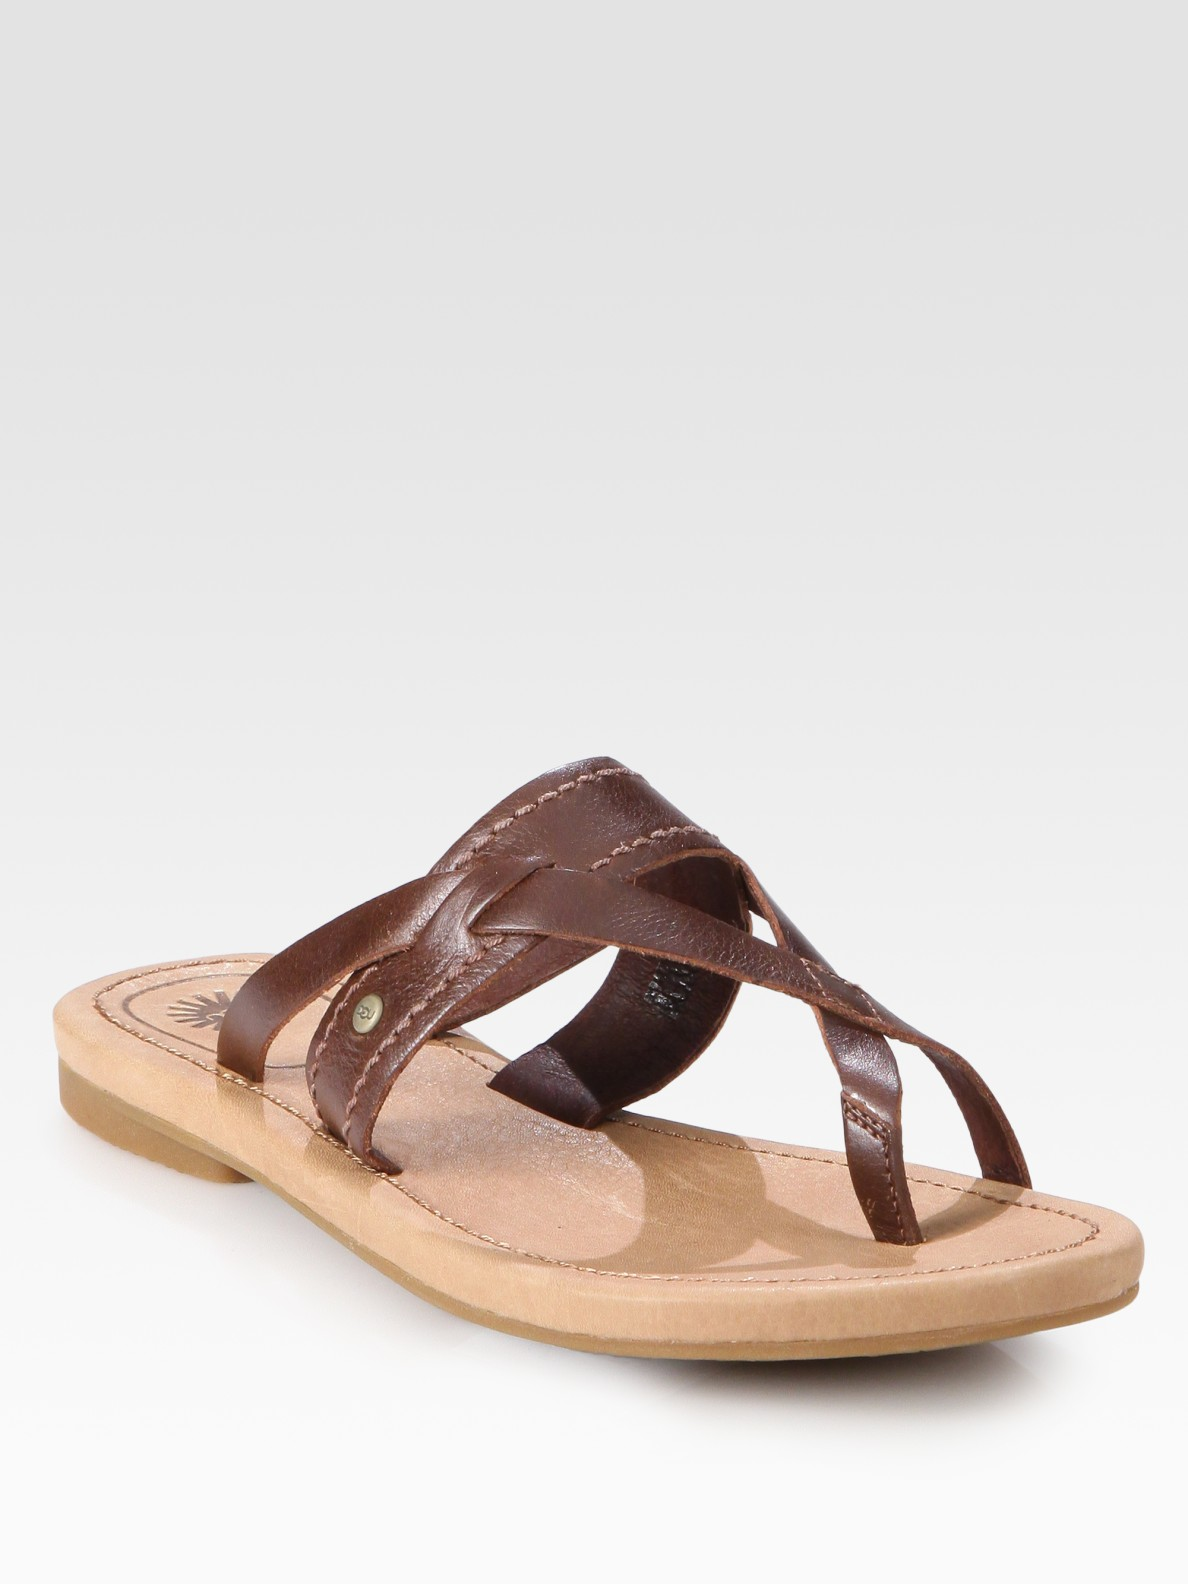 Ugg Mireya Leather Toe Ring Sandals In Brown Lyst